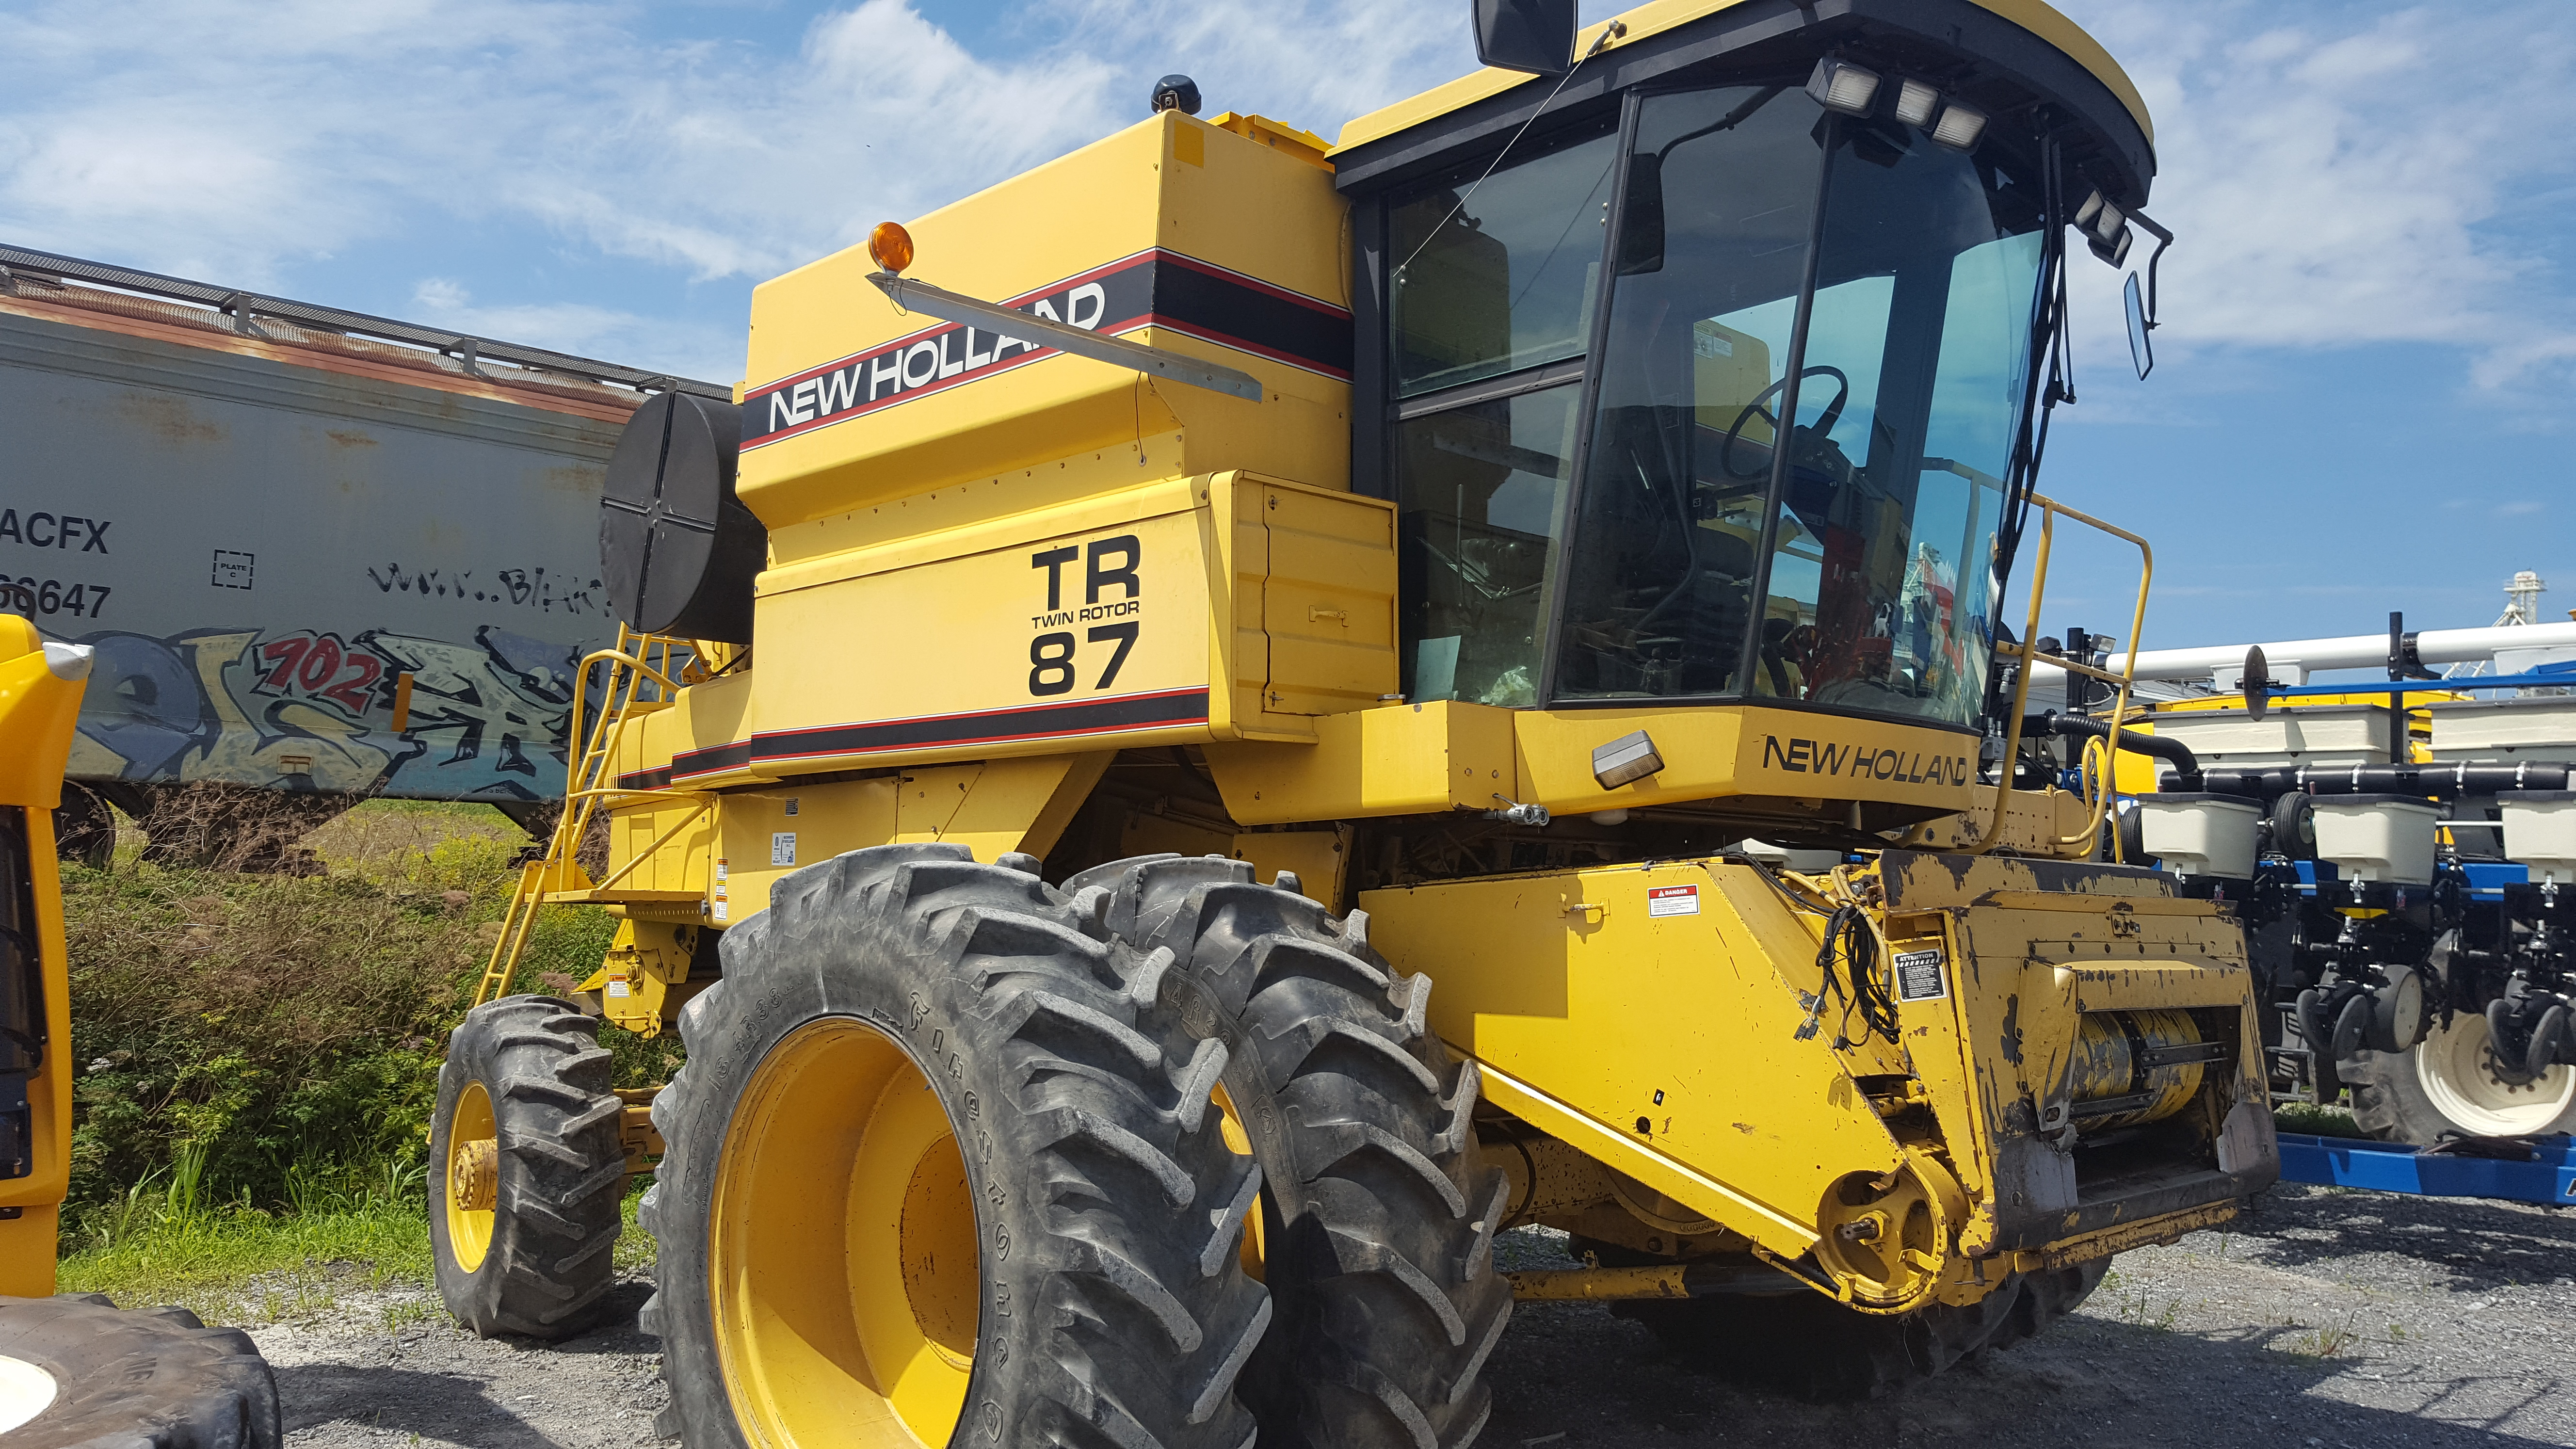 Moissonneuse-batteuse New Holland TR87